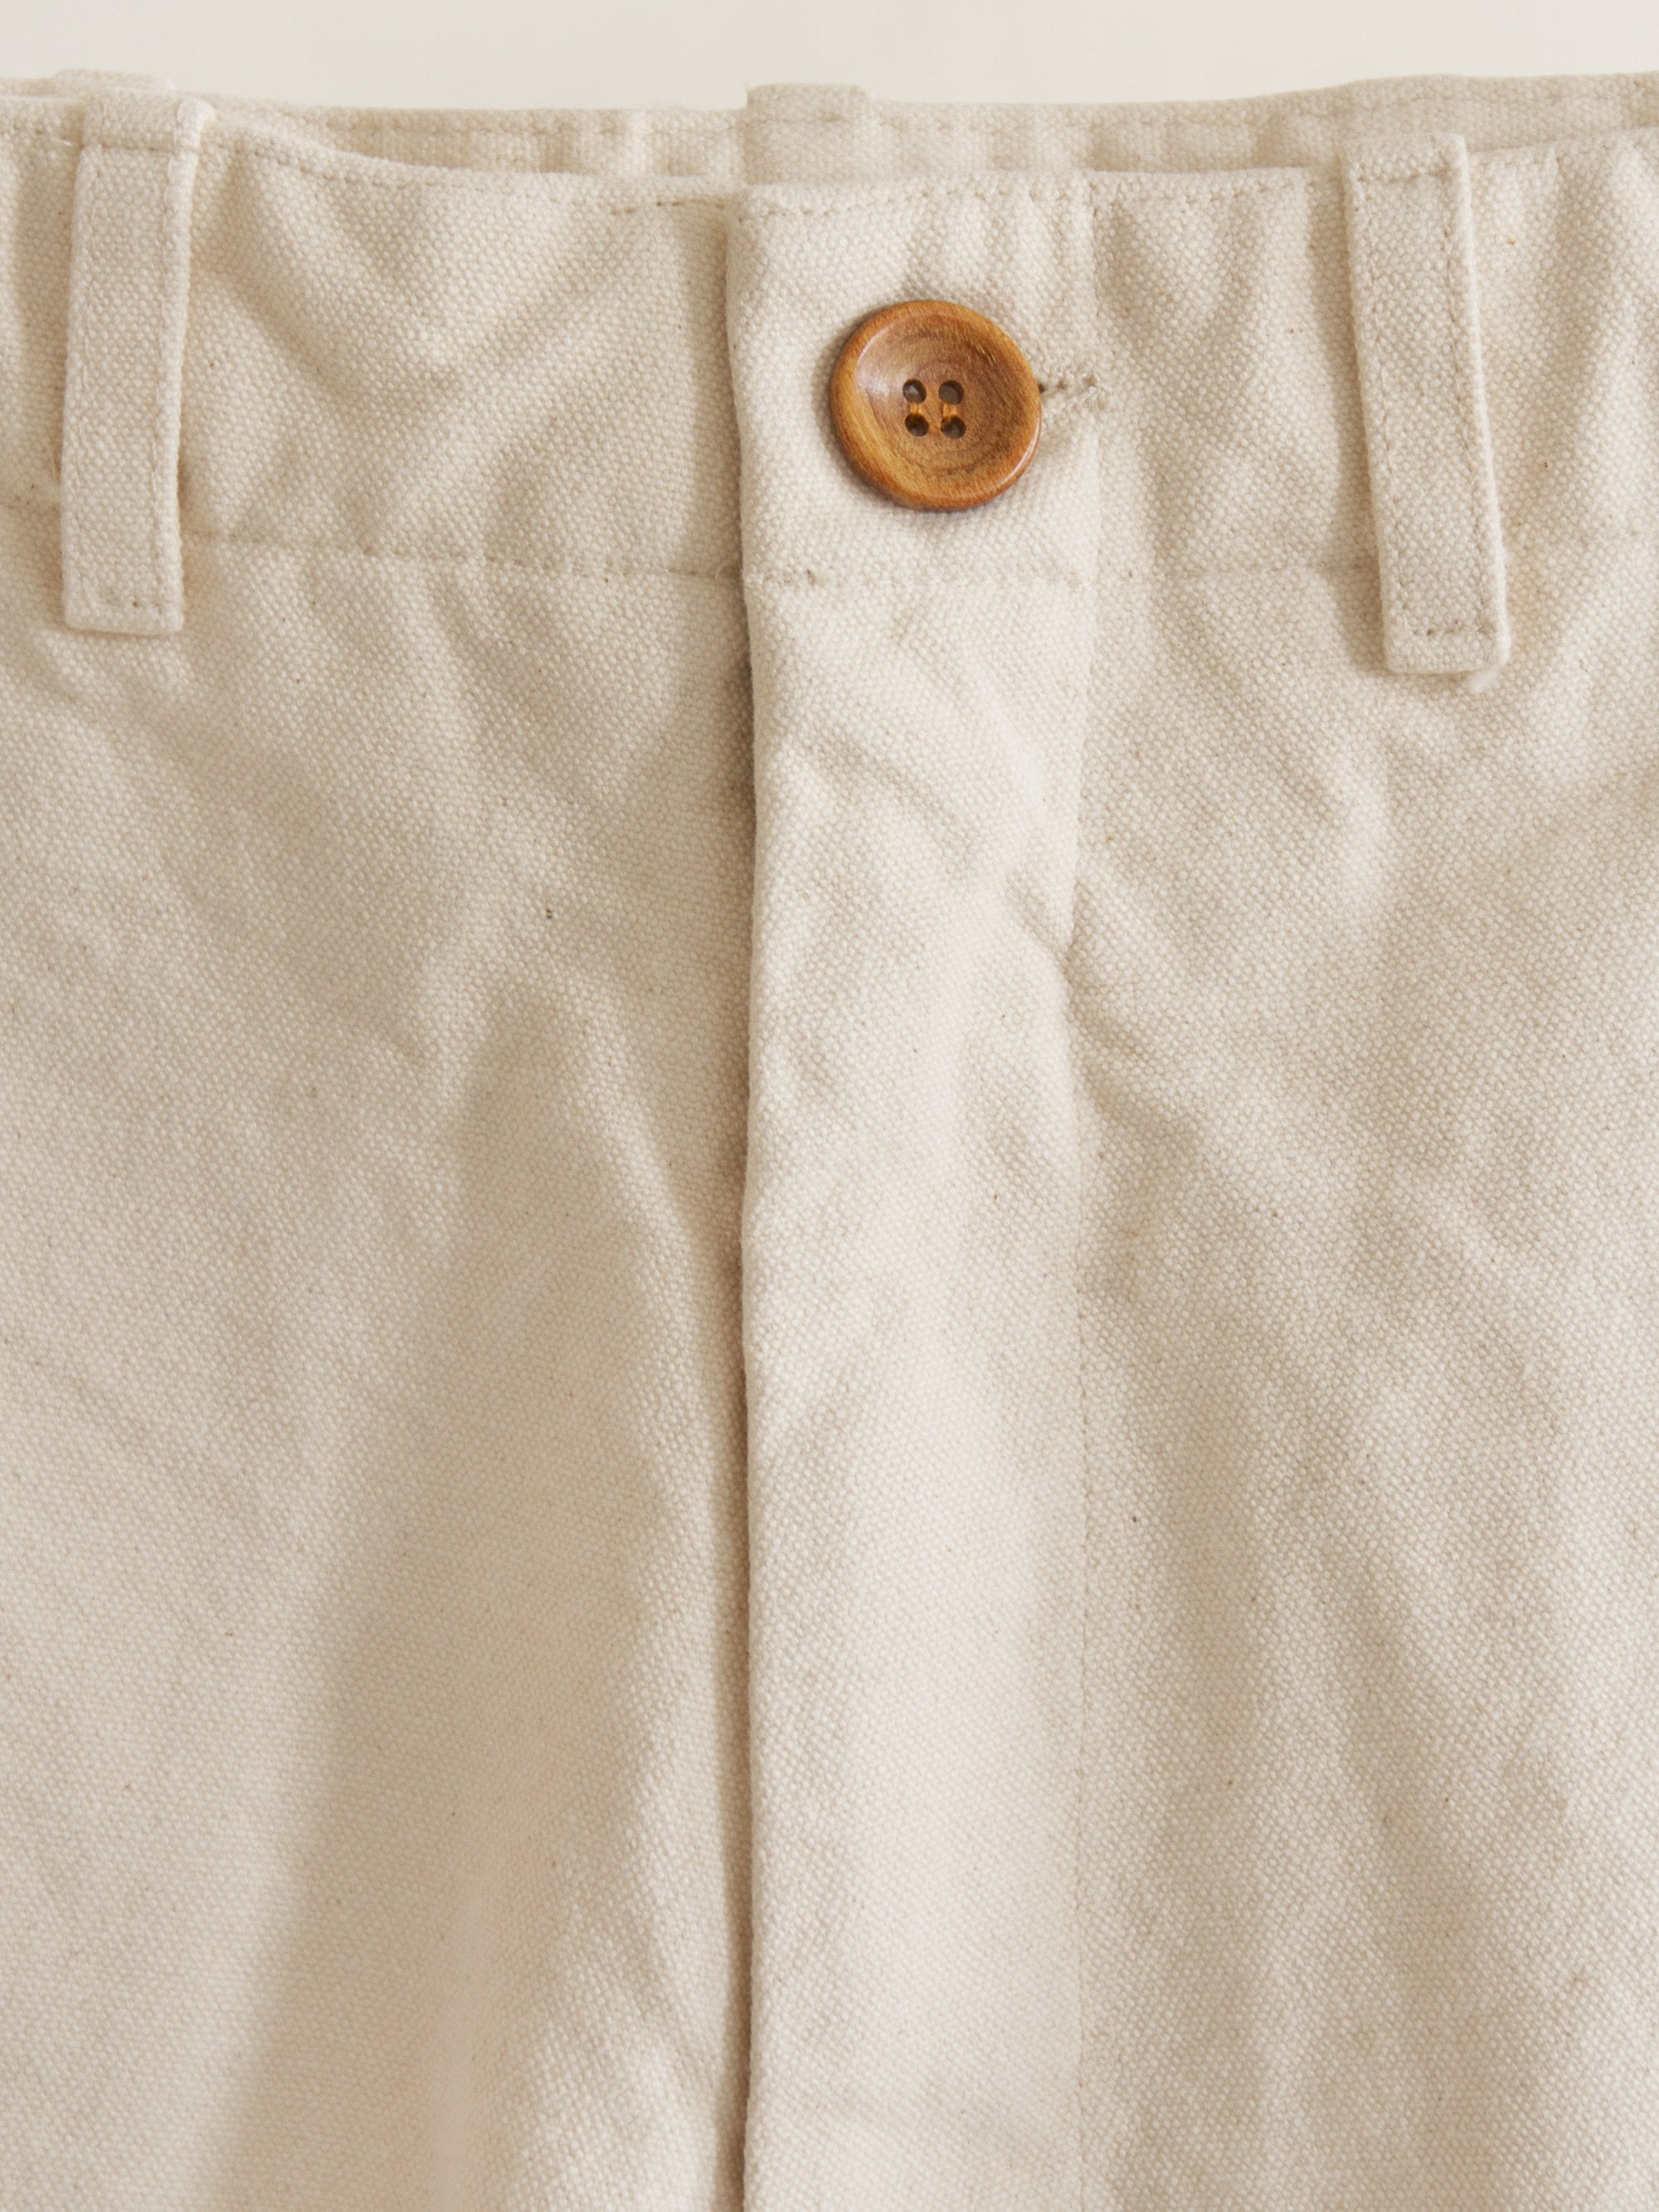 Namu Shop - Caron Callahan Greene Pant - Cream Canvas